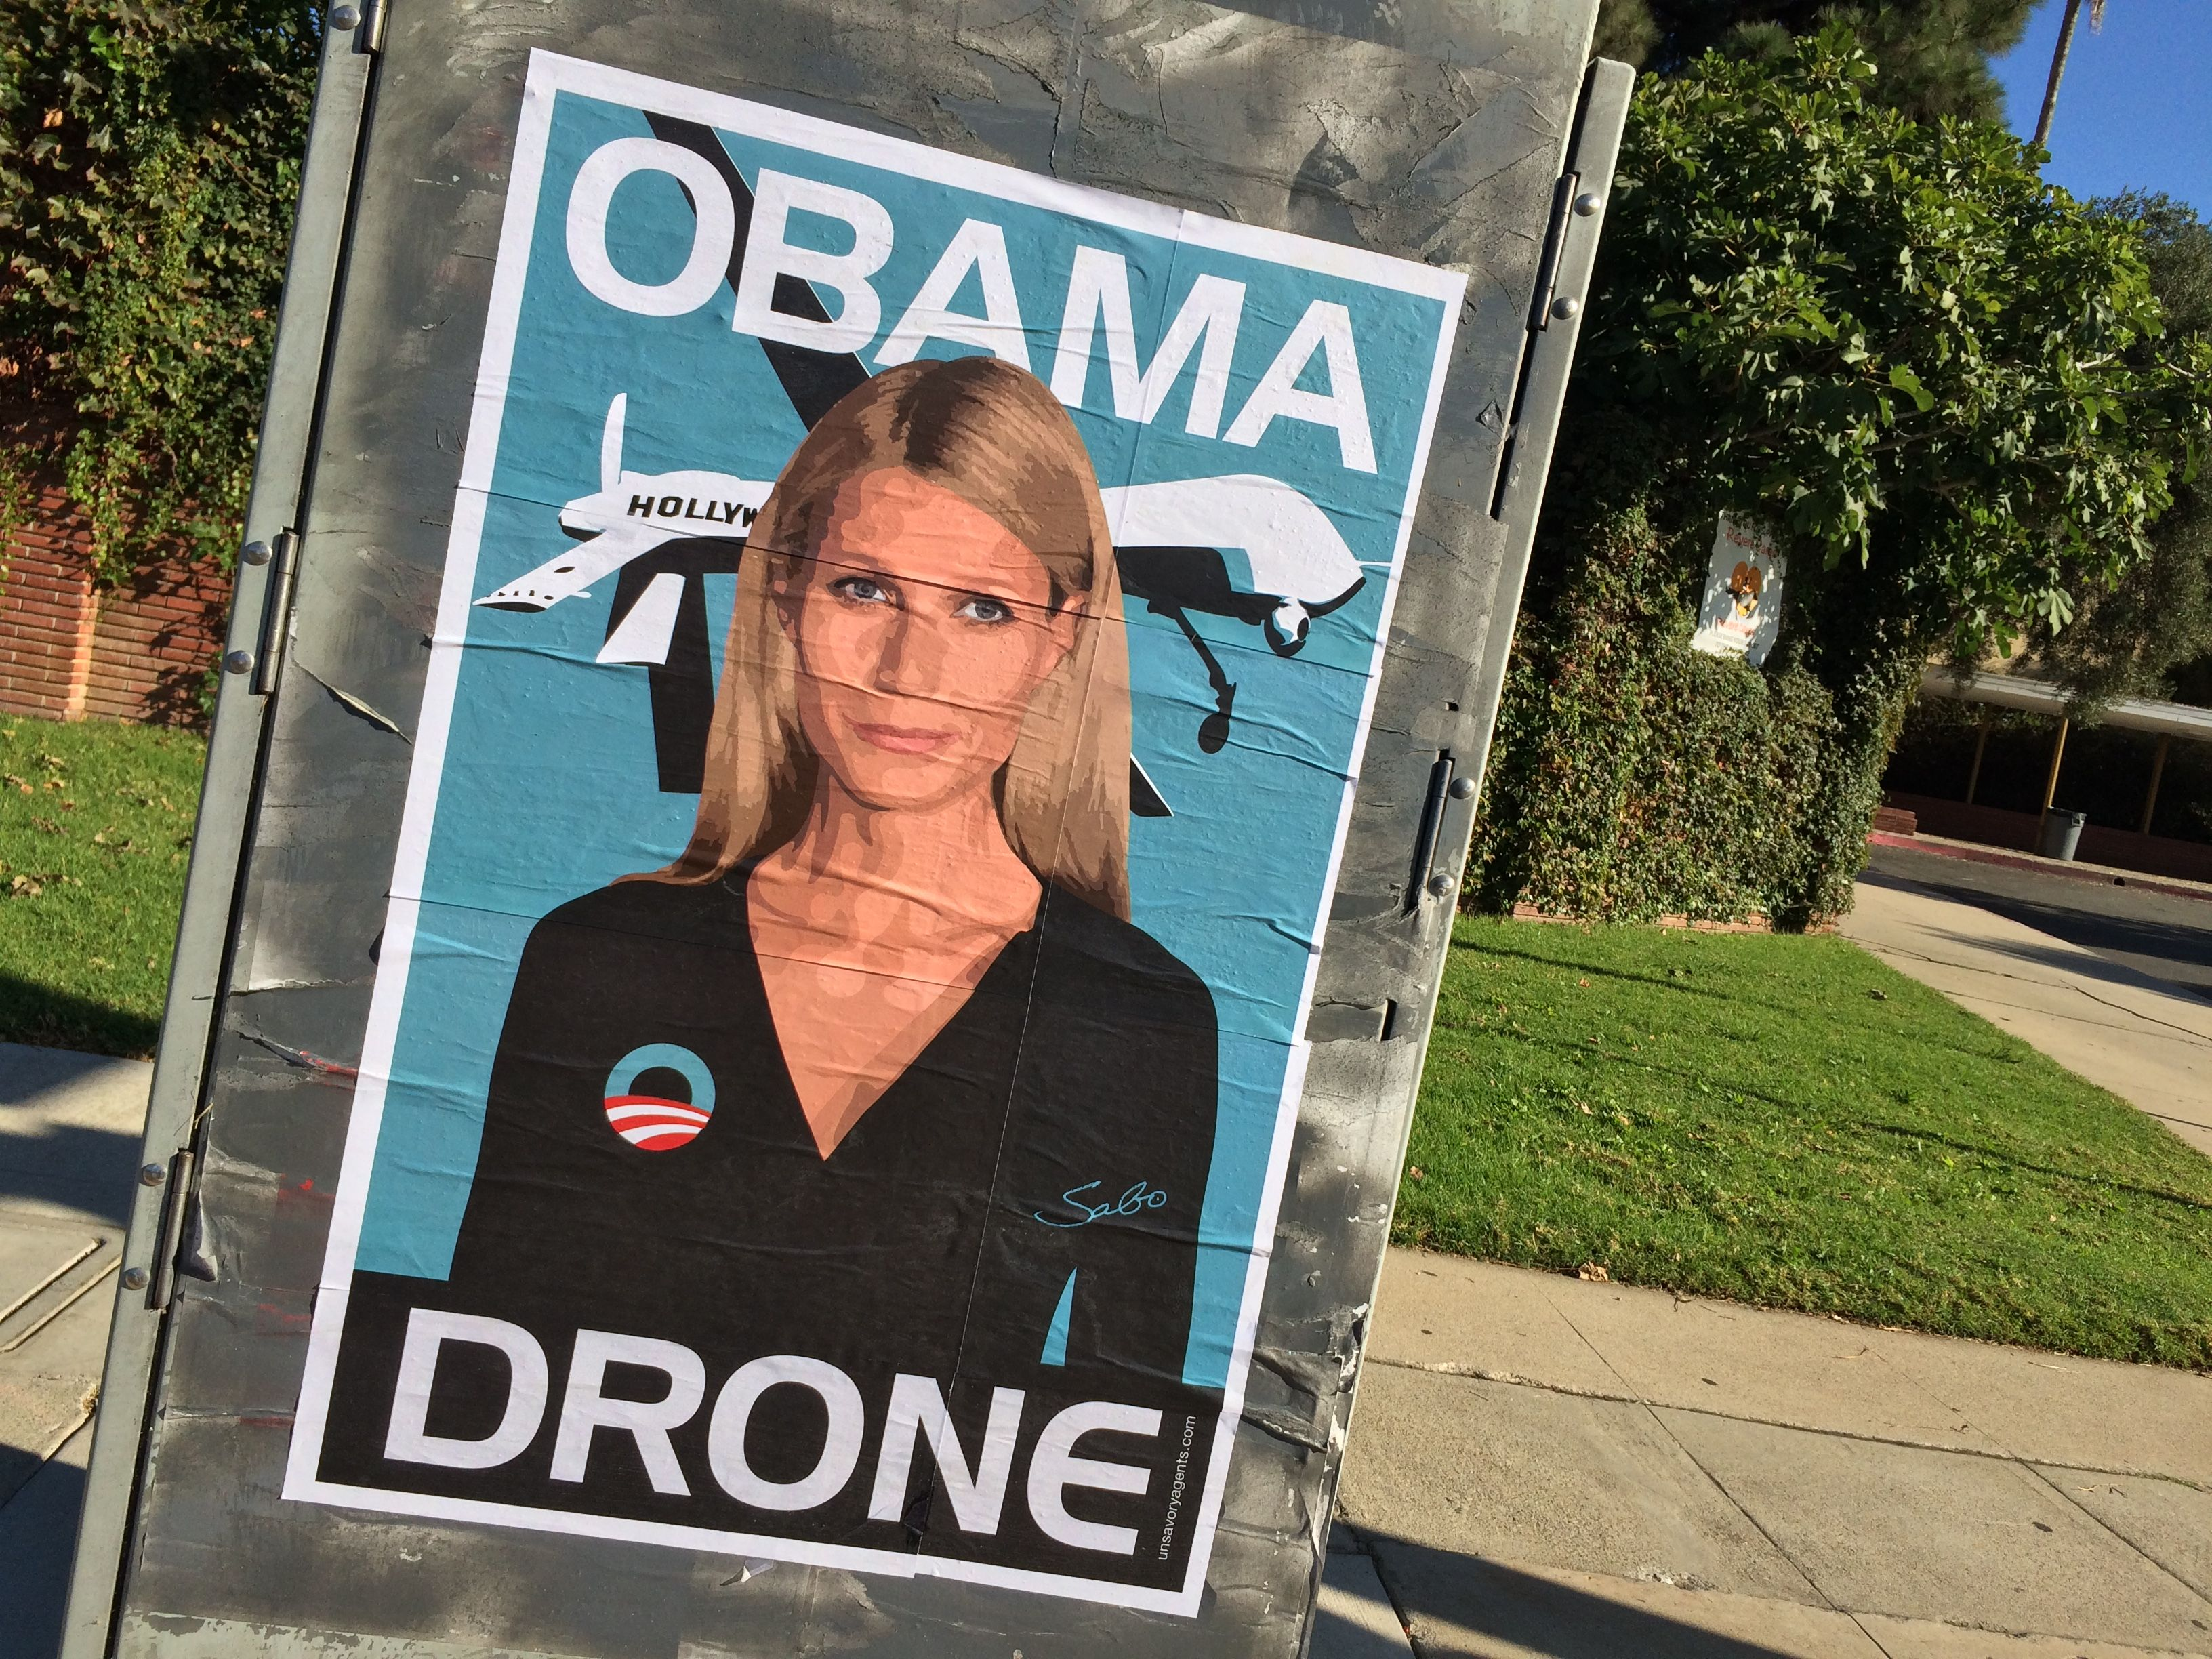 Gwyneth Paltrow Obama Drone posters poster Sabo President Obama DNC fundraiser L.A. Los Angeles Brentwood neighborhood neighbor neighbors hang hanging hung signs plaster plastering plastered traffic signal box boxes lamp posts bus benches anonymous conservative street artist provocative controversial subversive Unsavory Agents UnsavoryAgents outside political Democrats Democrat drones Predator plane planes flying background actor actress home house host hosting gala school